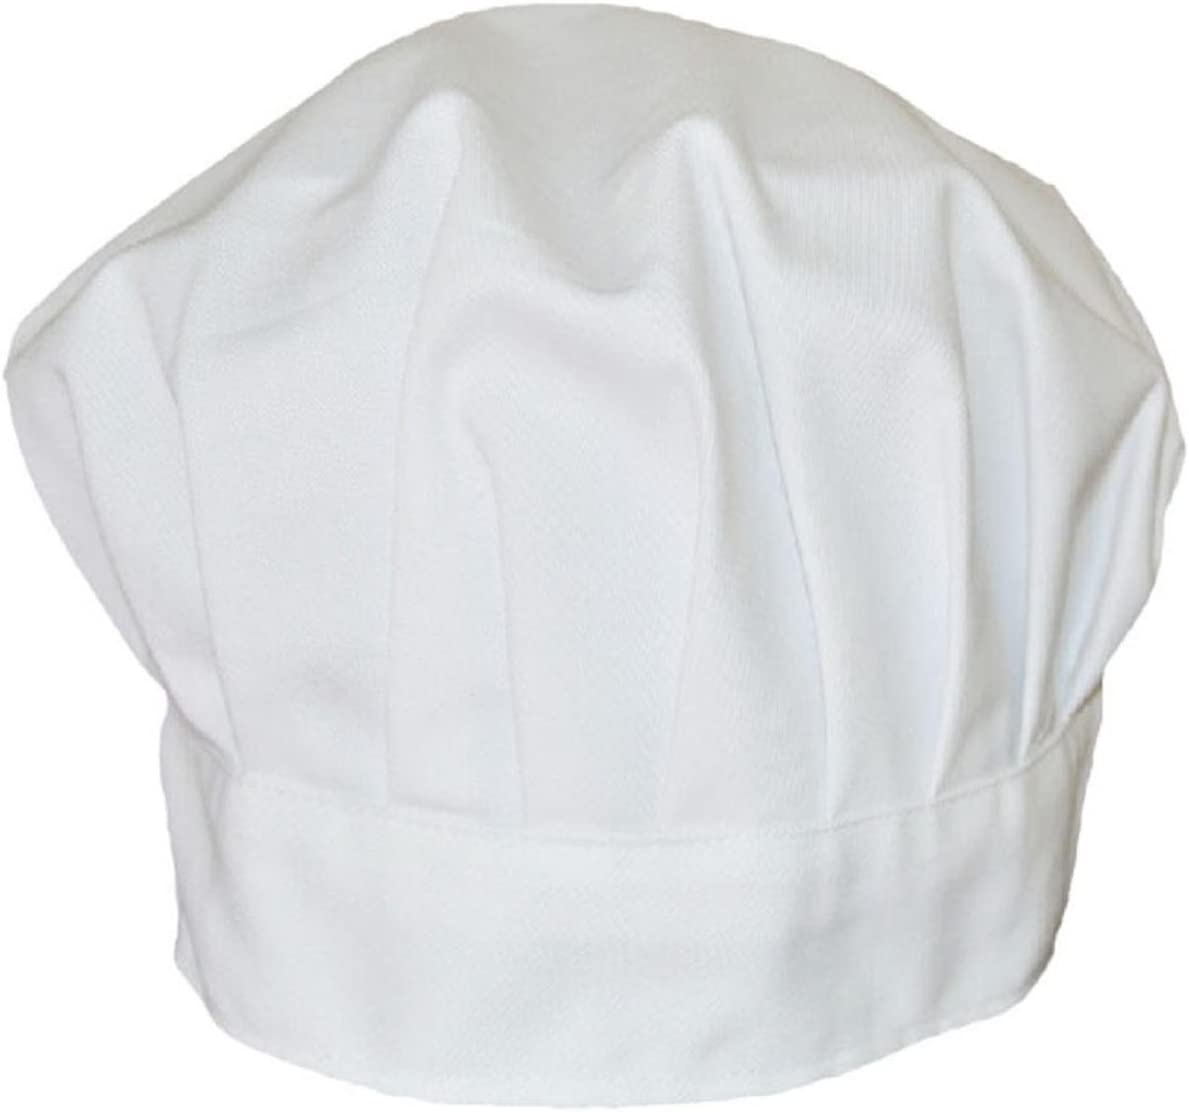 Witspace Chef Hats Fancy Dress Party Baker Cook Cooking BBQ Kitchen White Chef Hat Cap